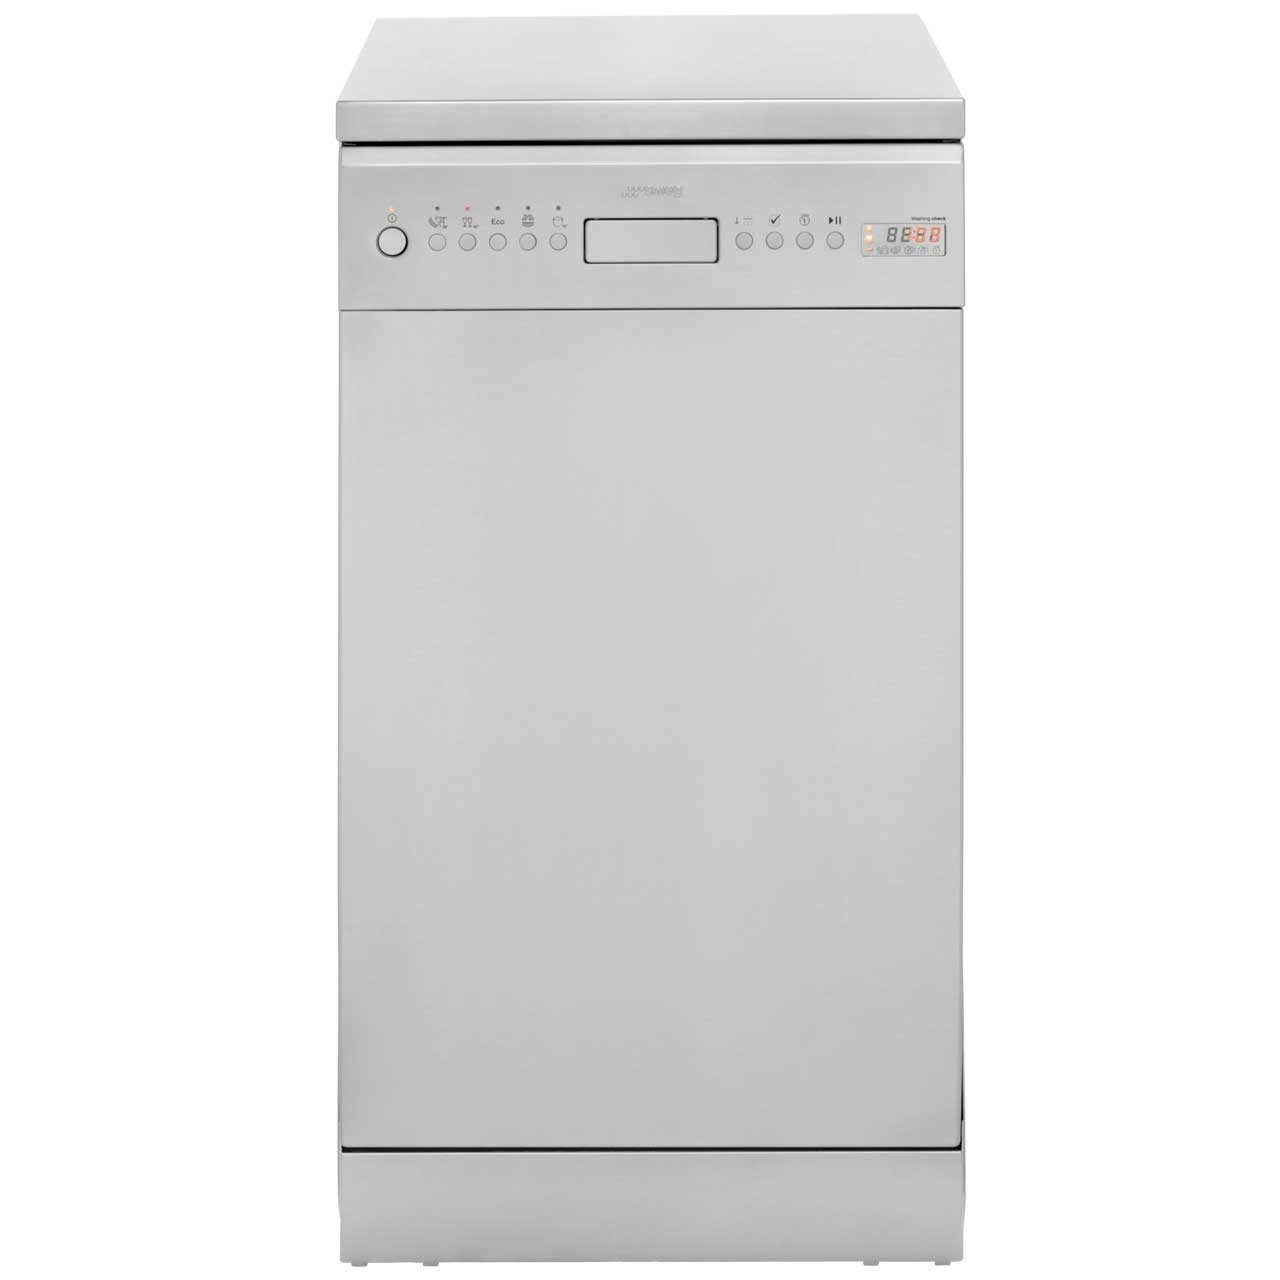 Smeg D4SS1 Free Standing Slimline Dishwasher in Stainless Steel